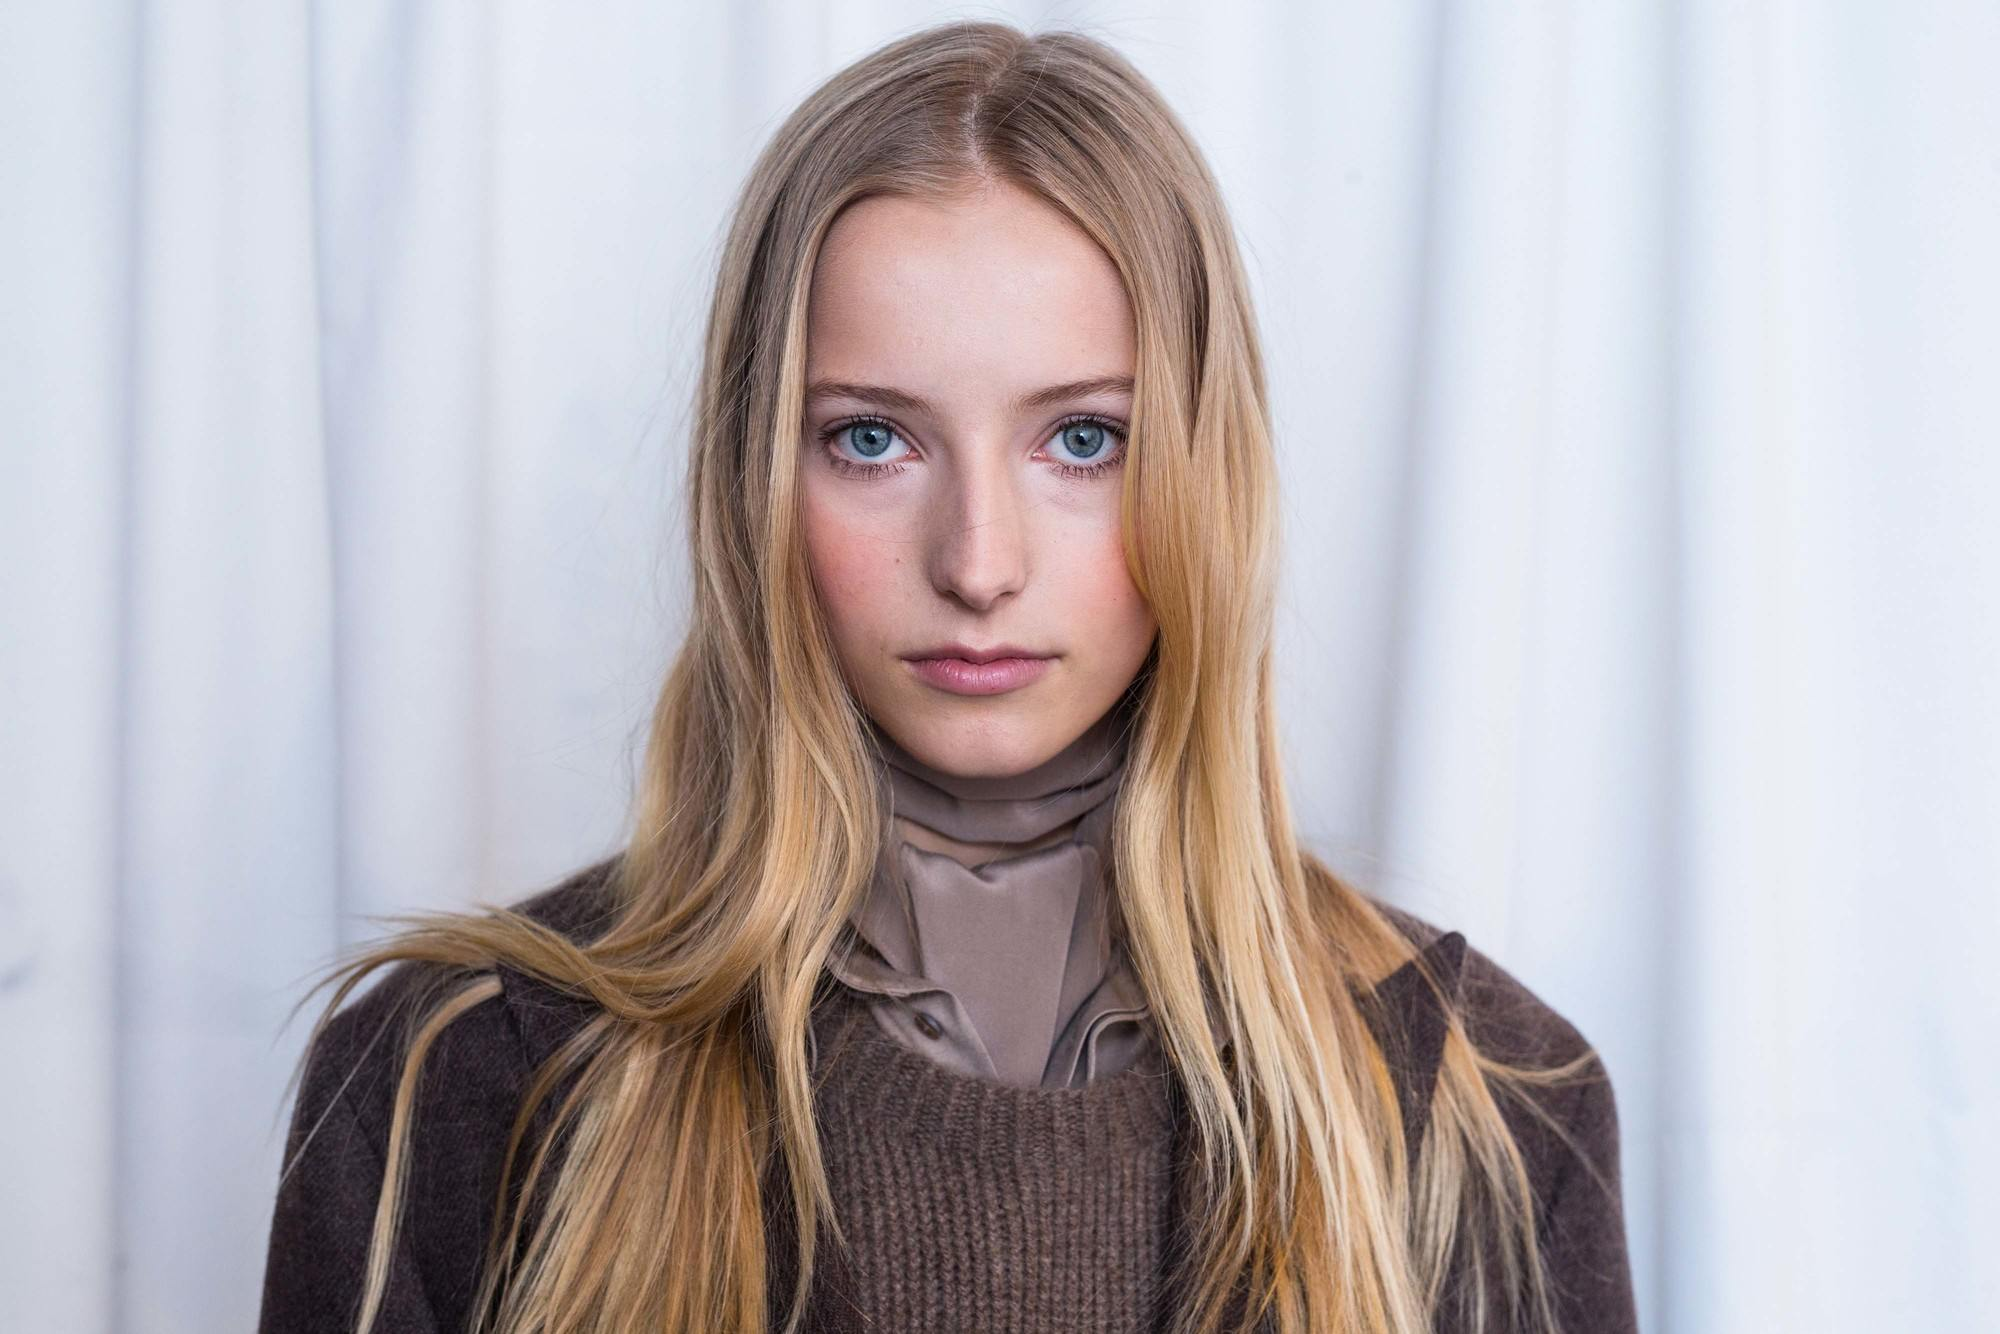 close up shot of model with blonde balayage hair colour, wearing brown outfit